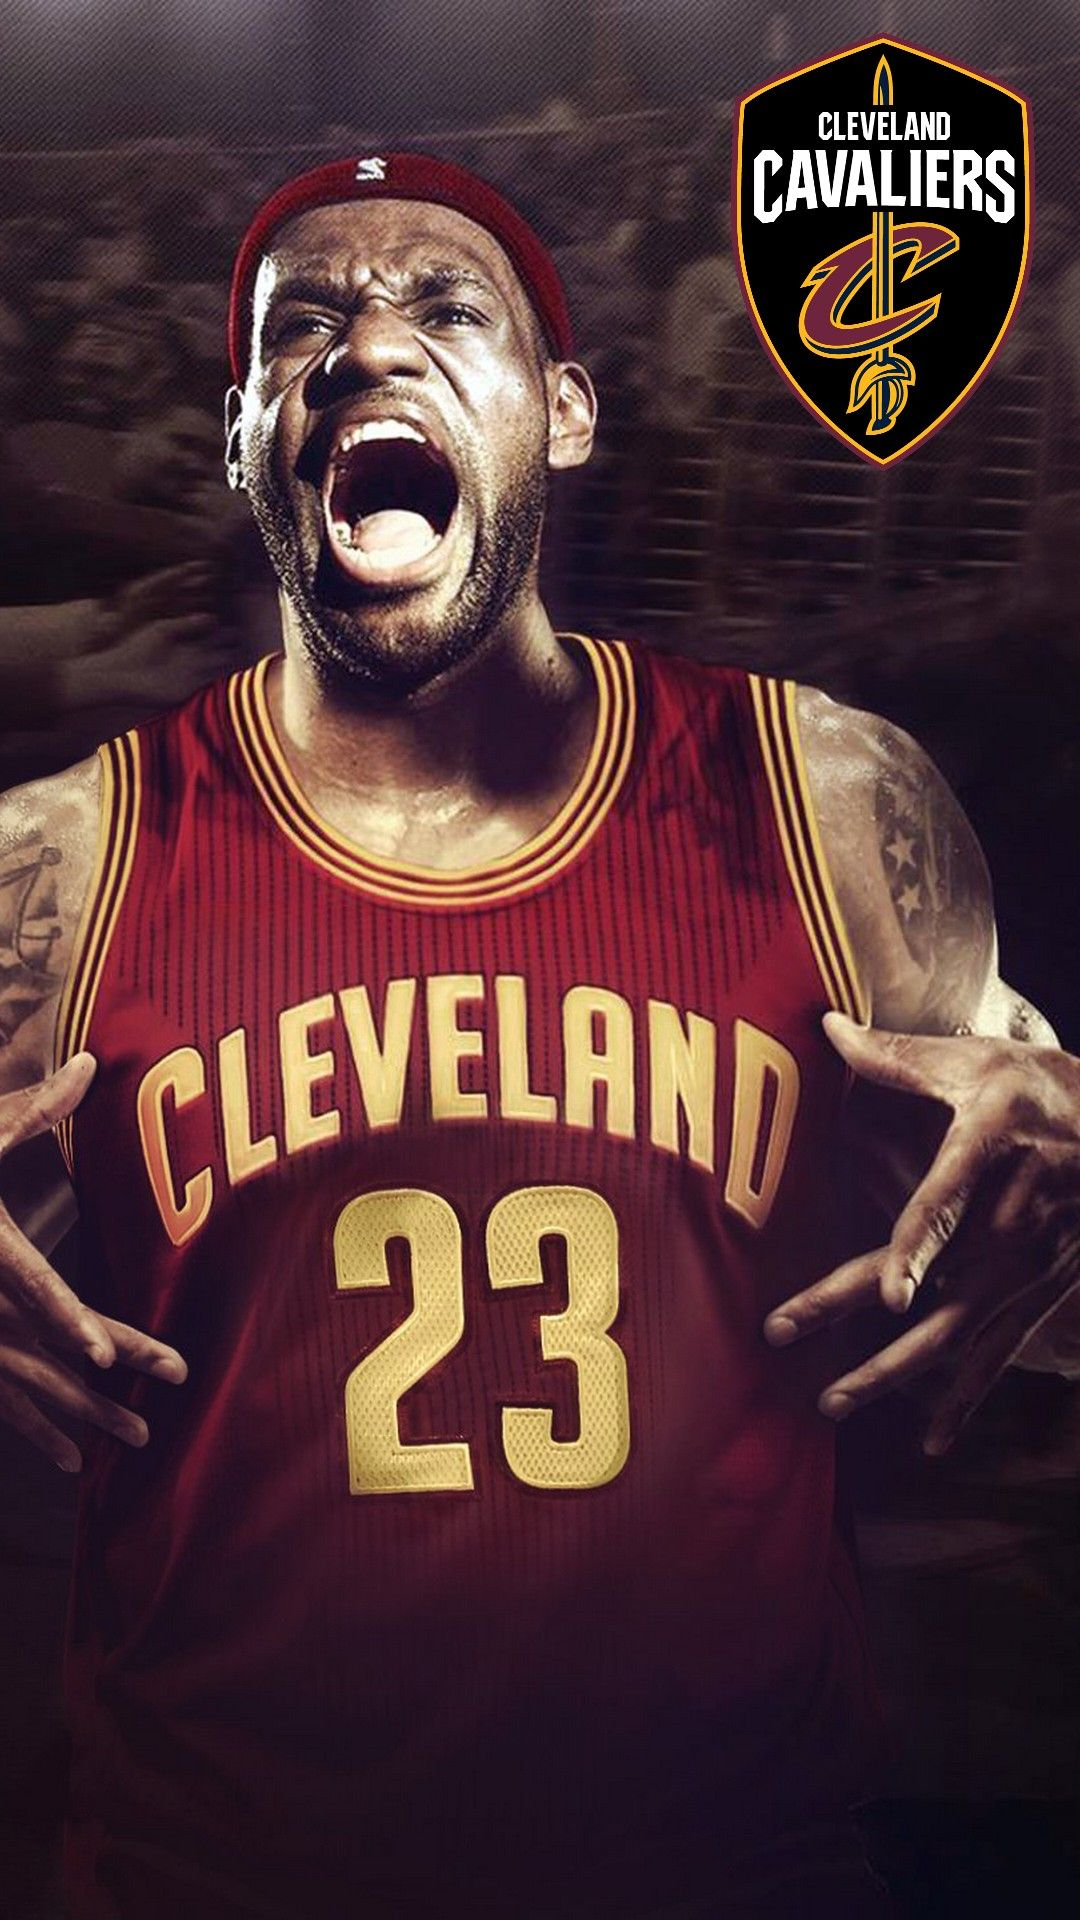 Basketball Wallpaper Best Basketball Wallpapers 2020 Lebron James Background Basketball Wallpaper Iphone 7 Plus Wallpaper